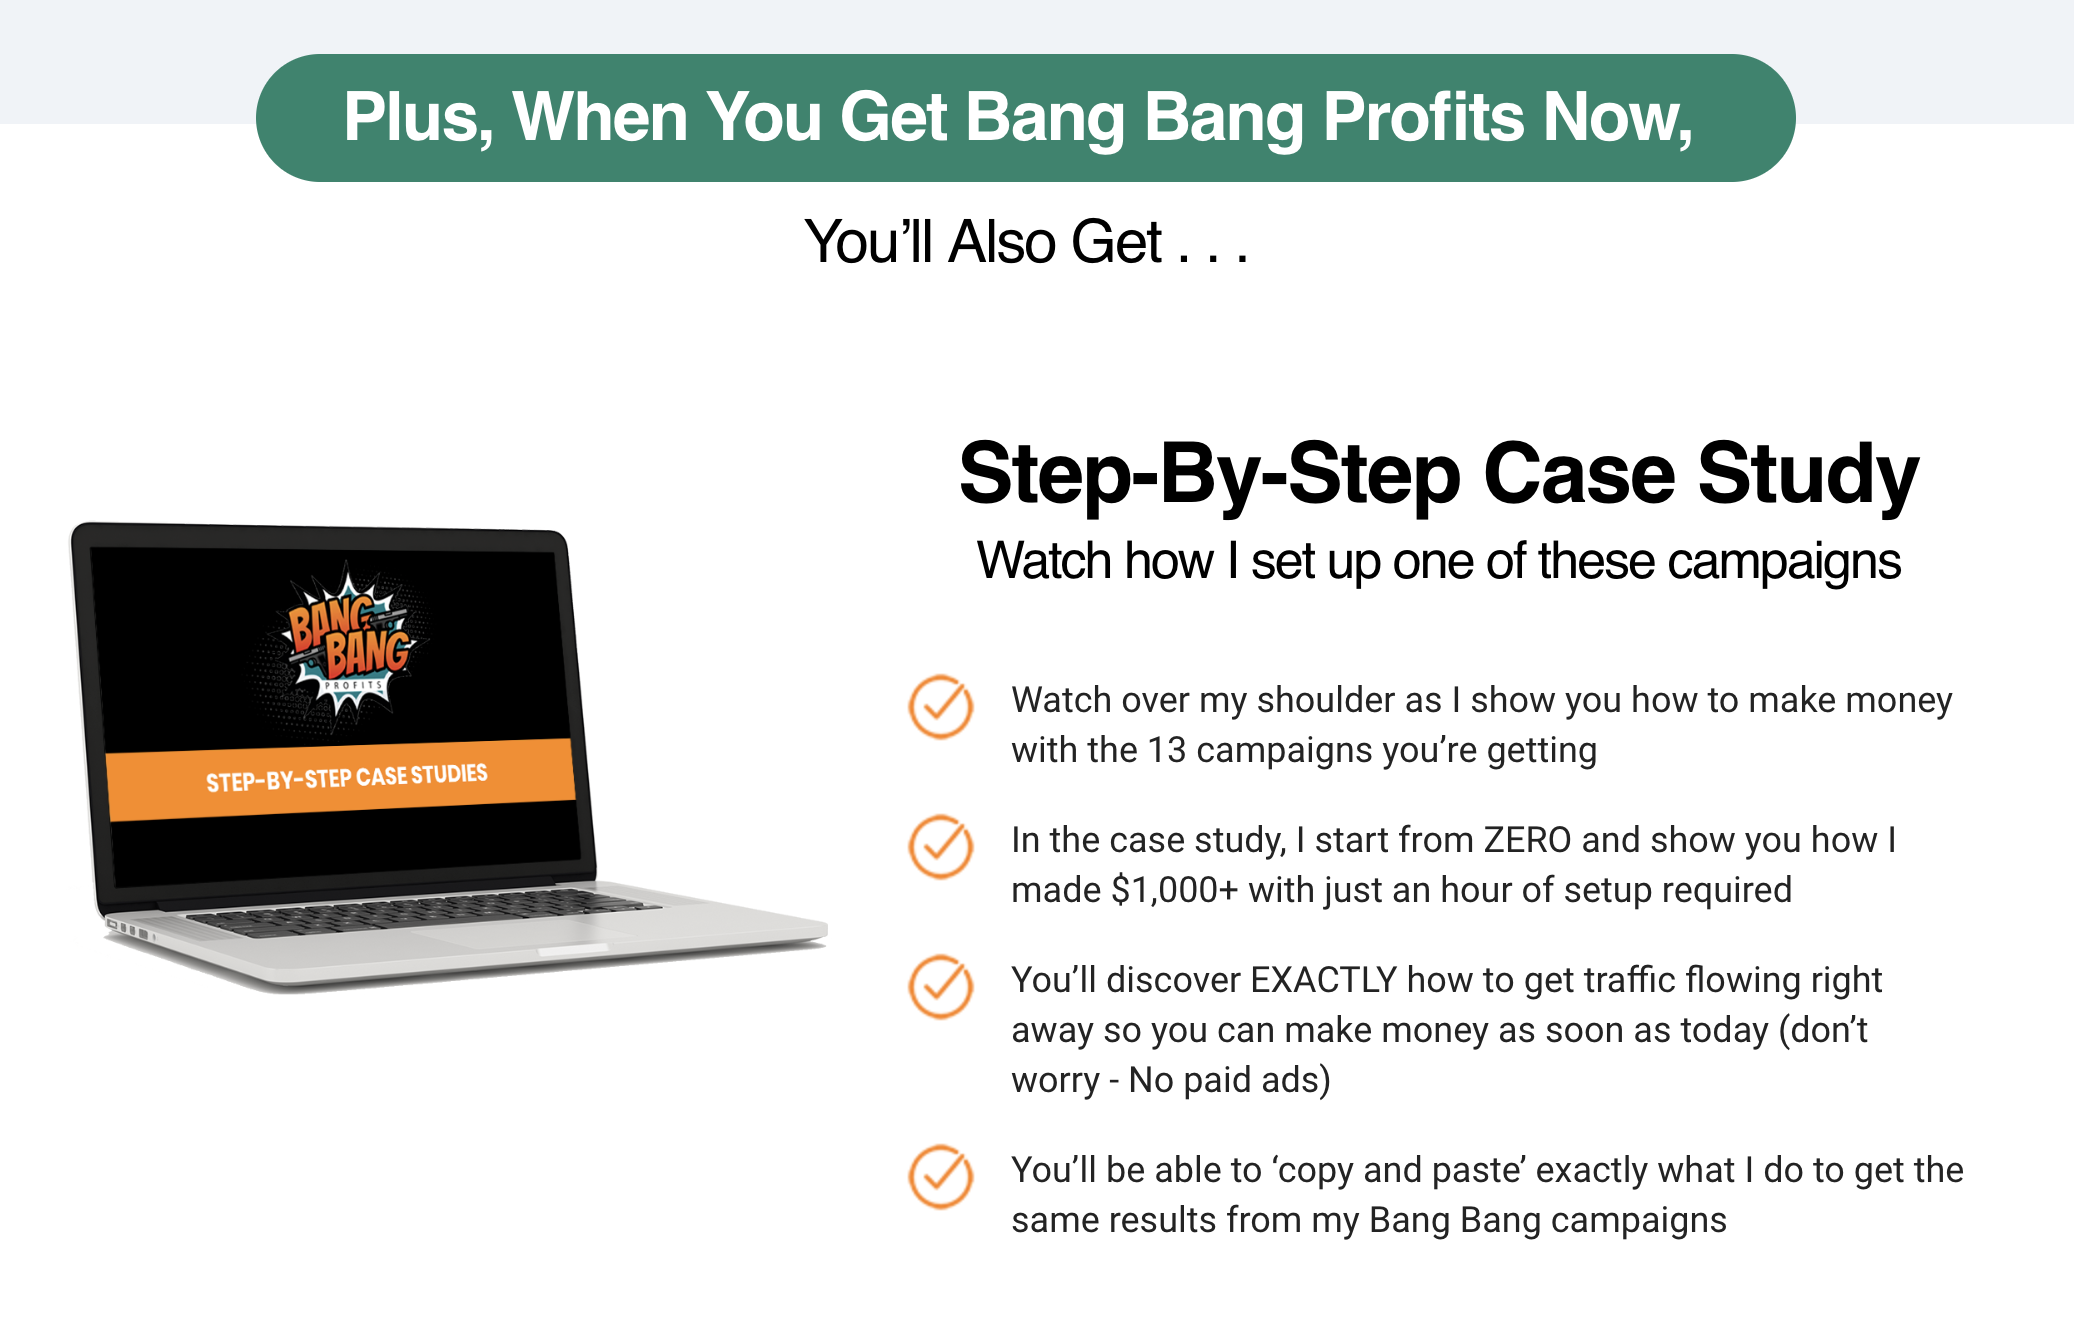 The TOP 13 Best Money-Making Campaigns you can Copy and Paste for Your Own 5